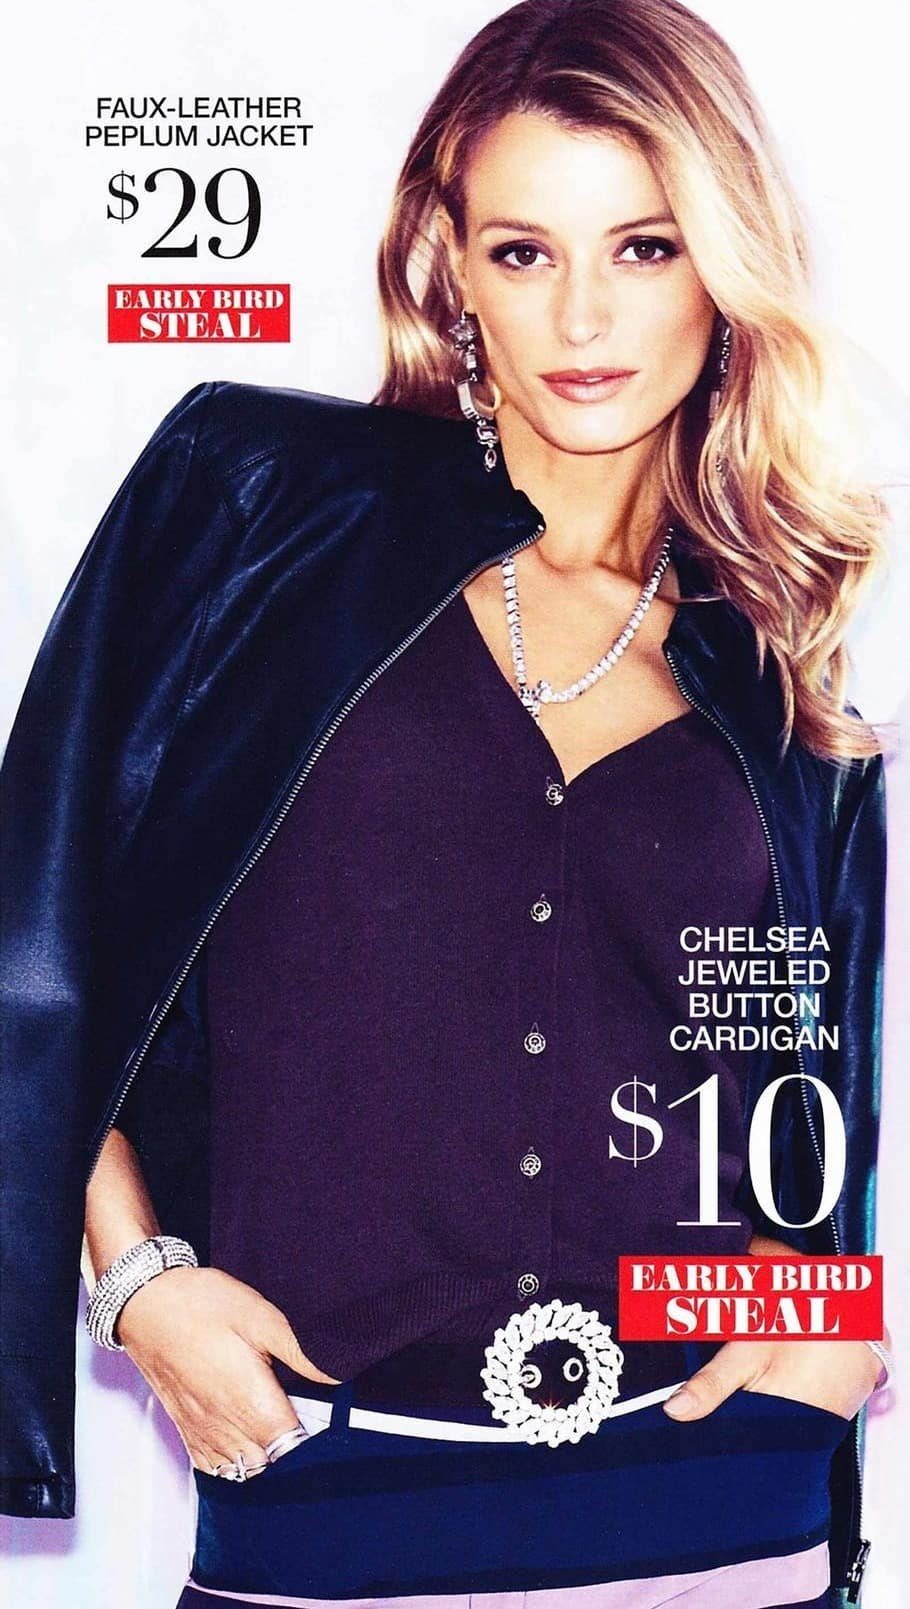 New York and Company Black Friday: Women's Chelsea Jeweled Button Cardigan for $10.00